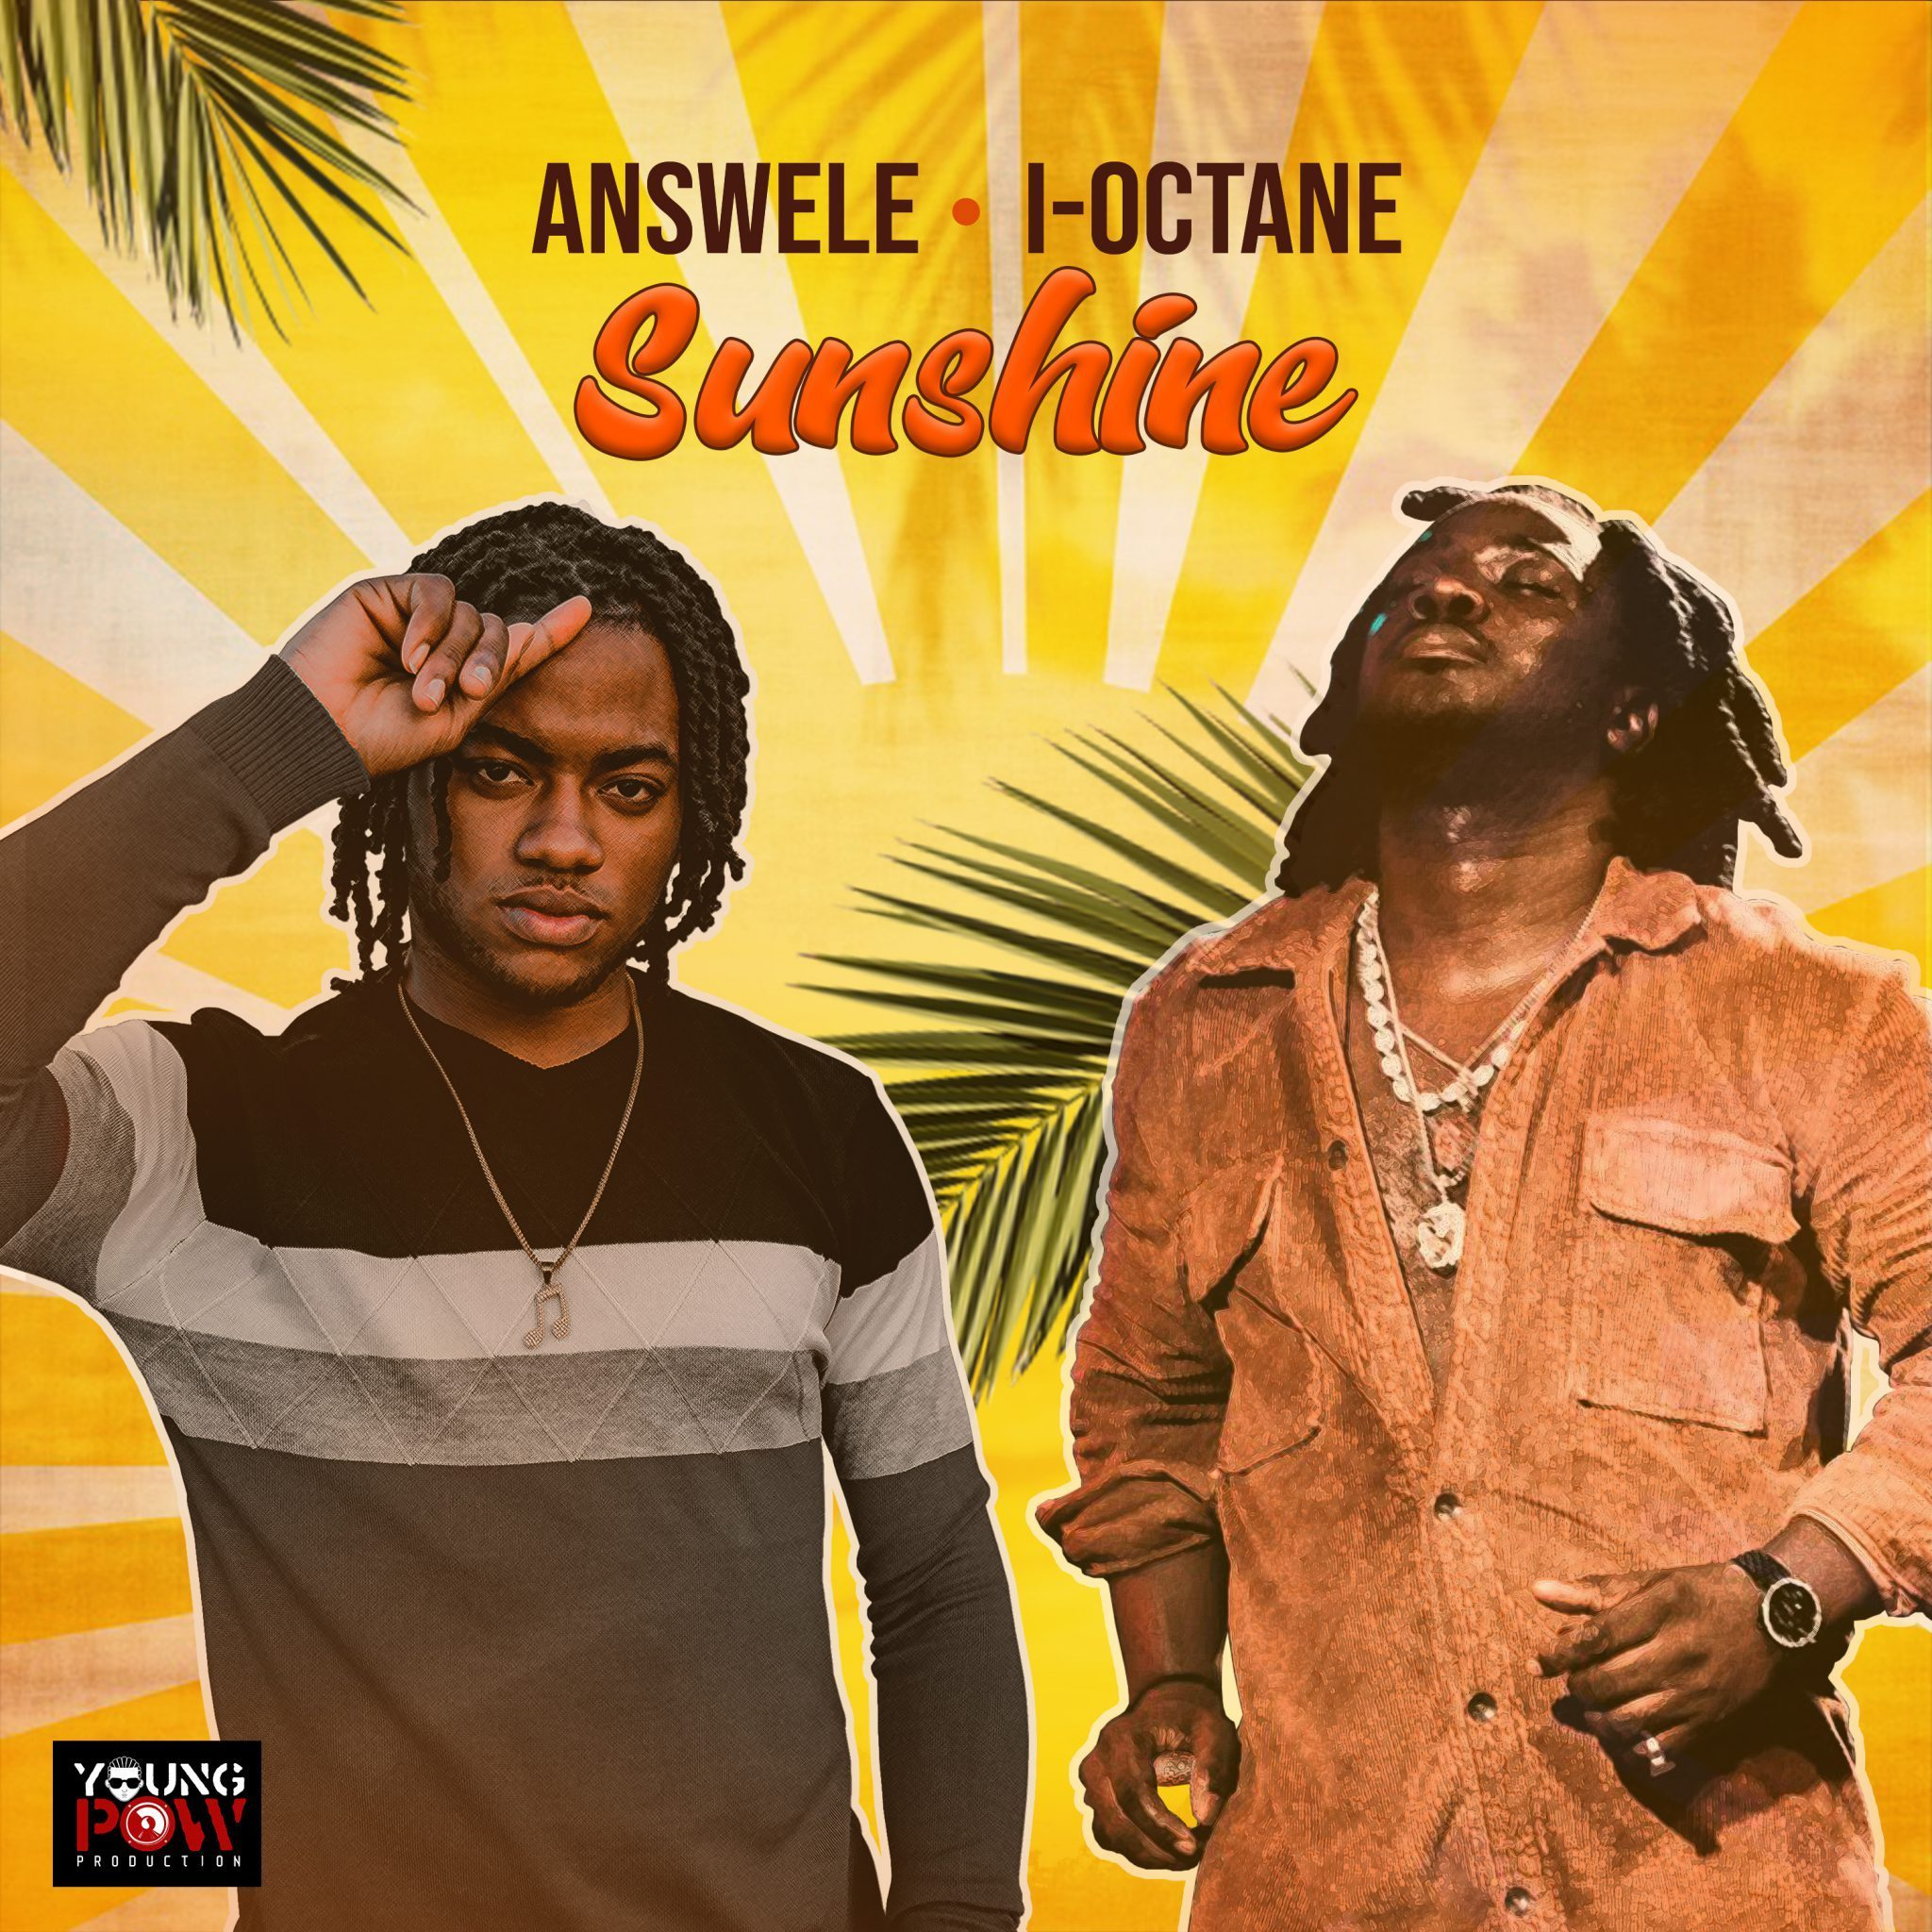 SUNSHINE / Brand new single Answele featuring I-Octane (Young Pow Prod.)